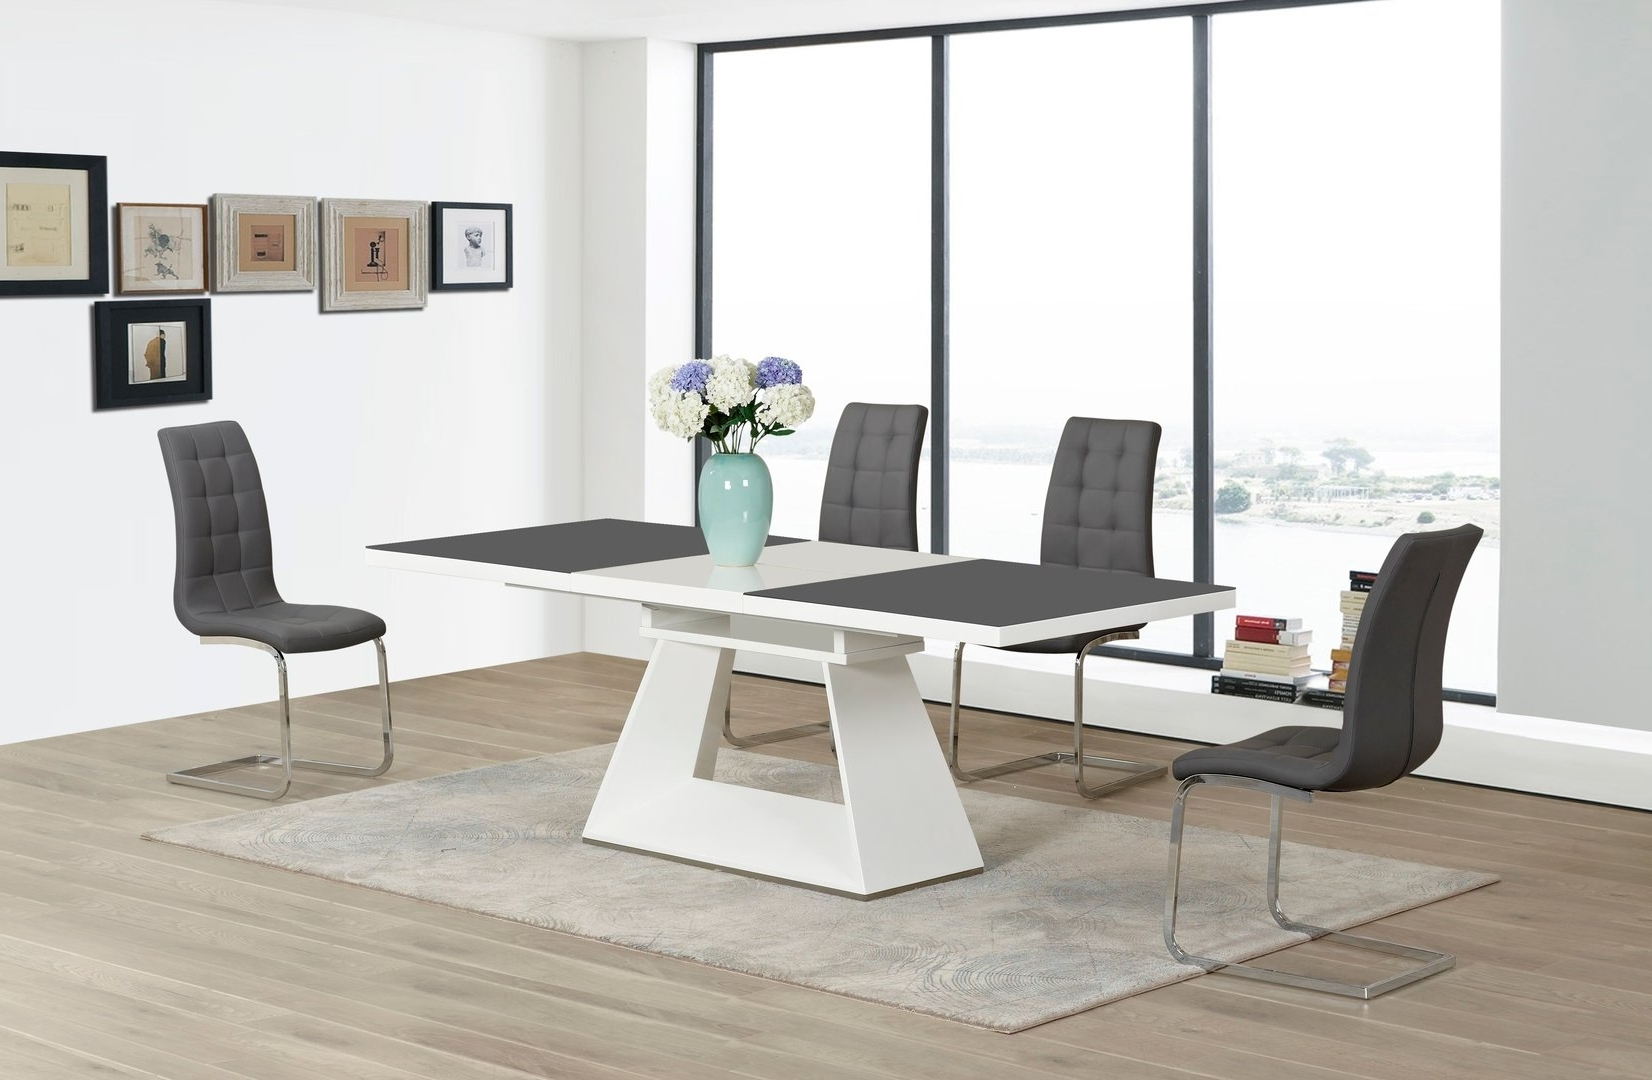 Best And Newest Grey / White Extending High Gloss Glass Dining Table And 6 Chairs For Extending Glass Dining Tables And 8 Chairs (View 22 of 25)